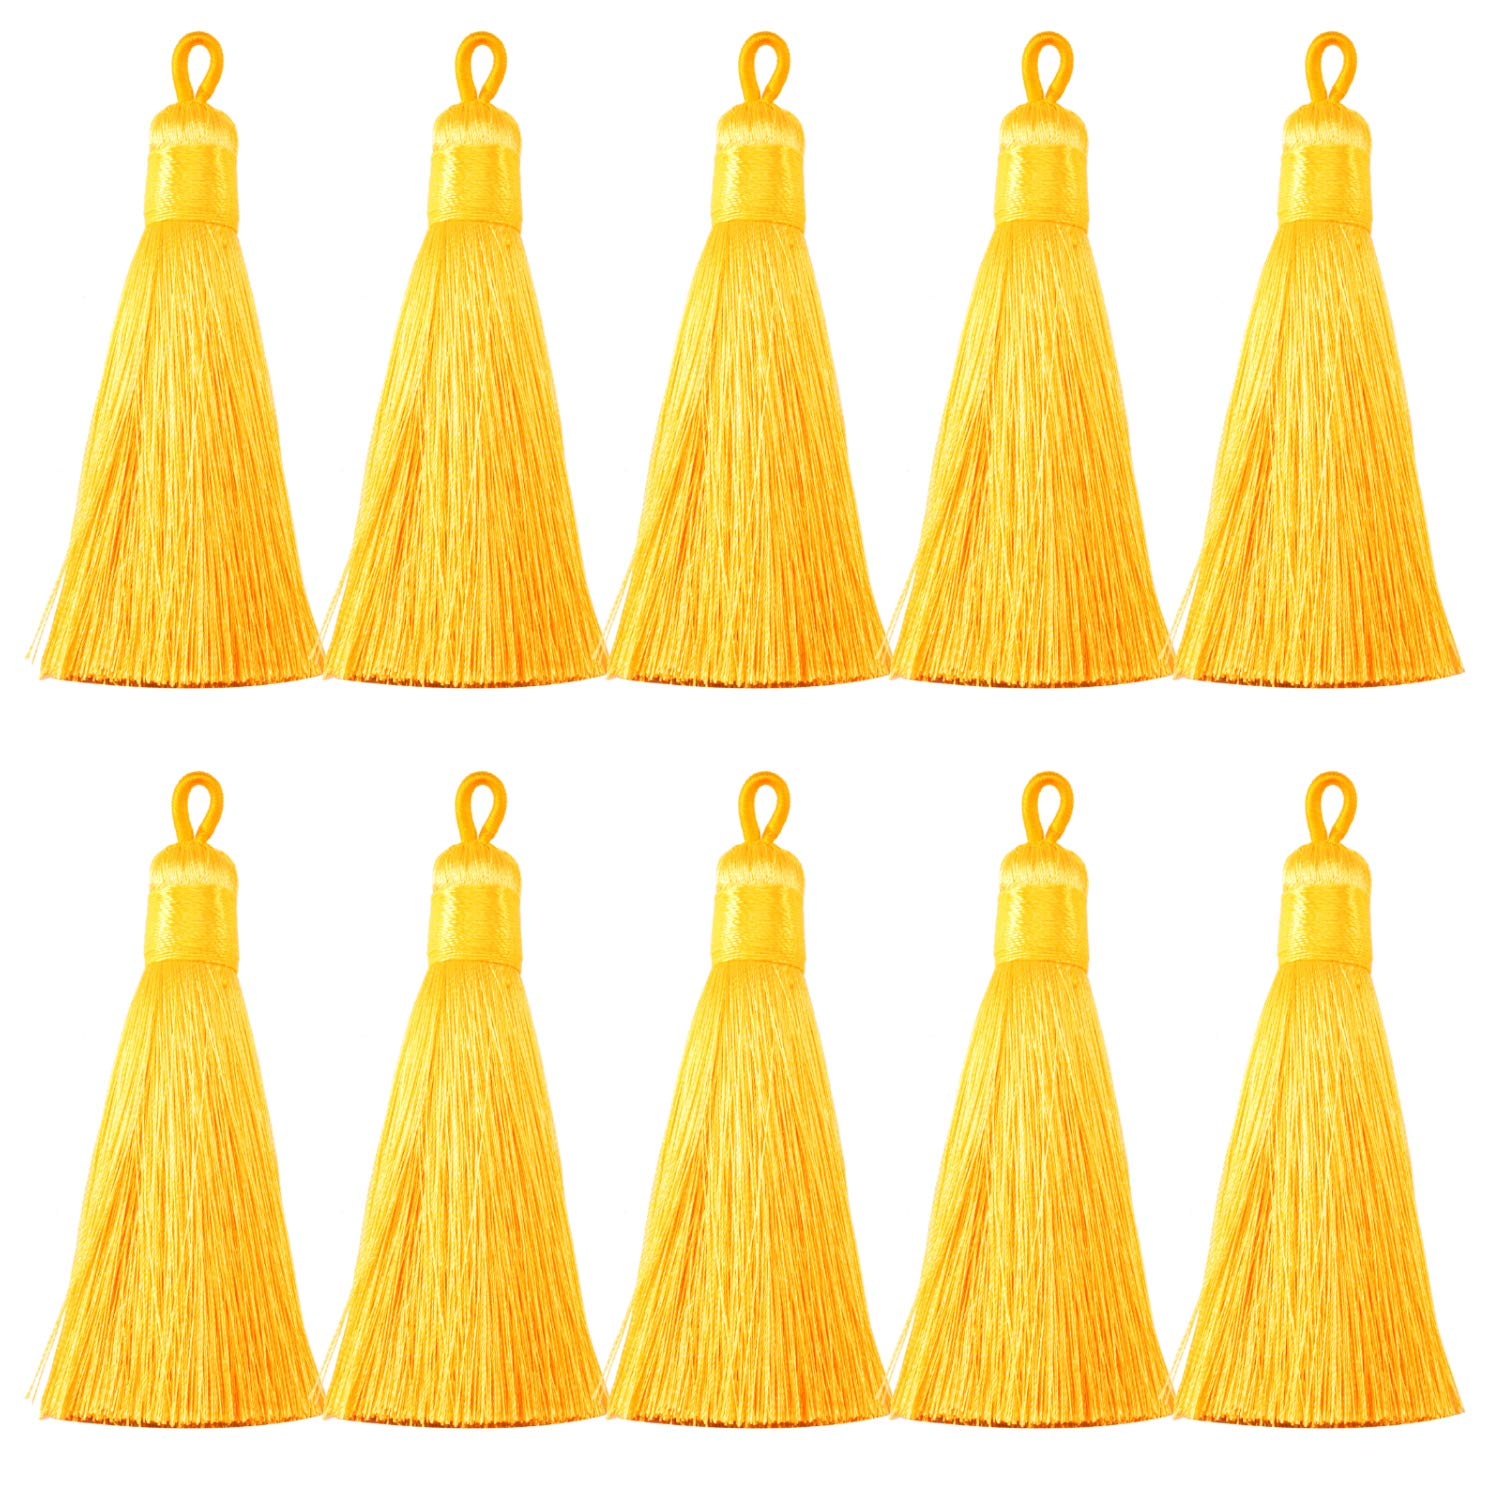 Forise 20Pcs 0.5 Wide Tassels Gold Fashion Handmade Silky Elegant Tassels with Hanging Loop for DIY Jewelry Making Accessories